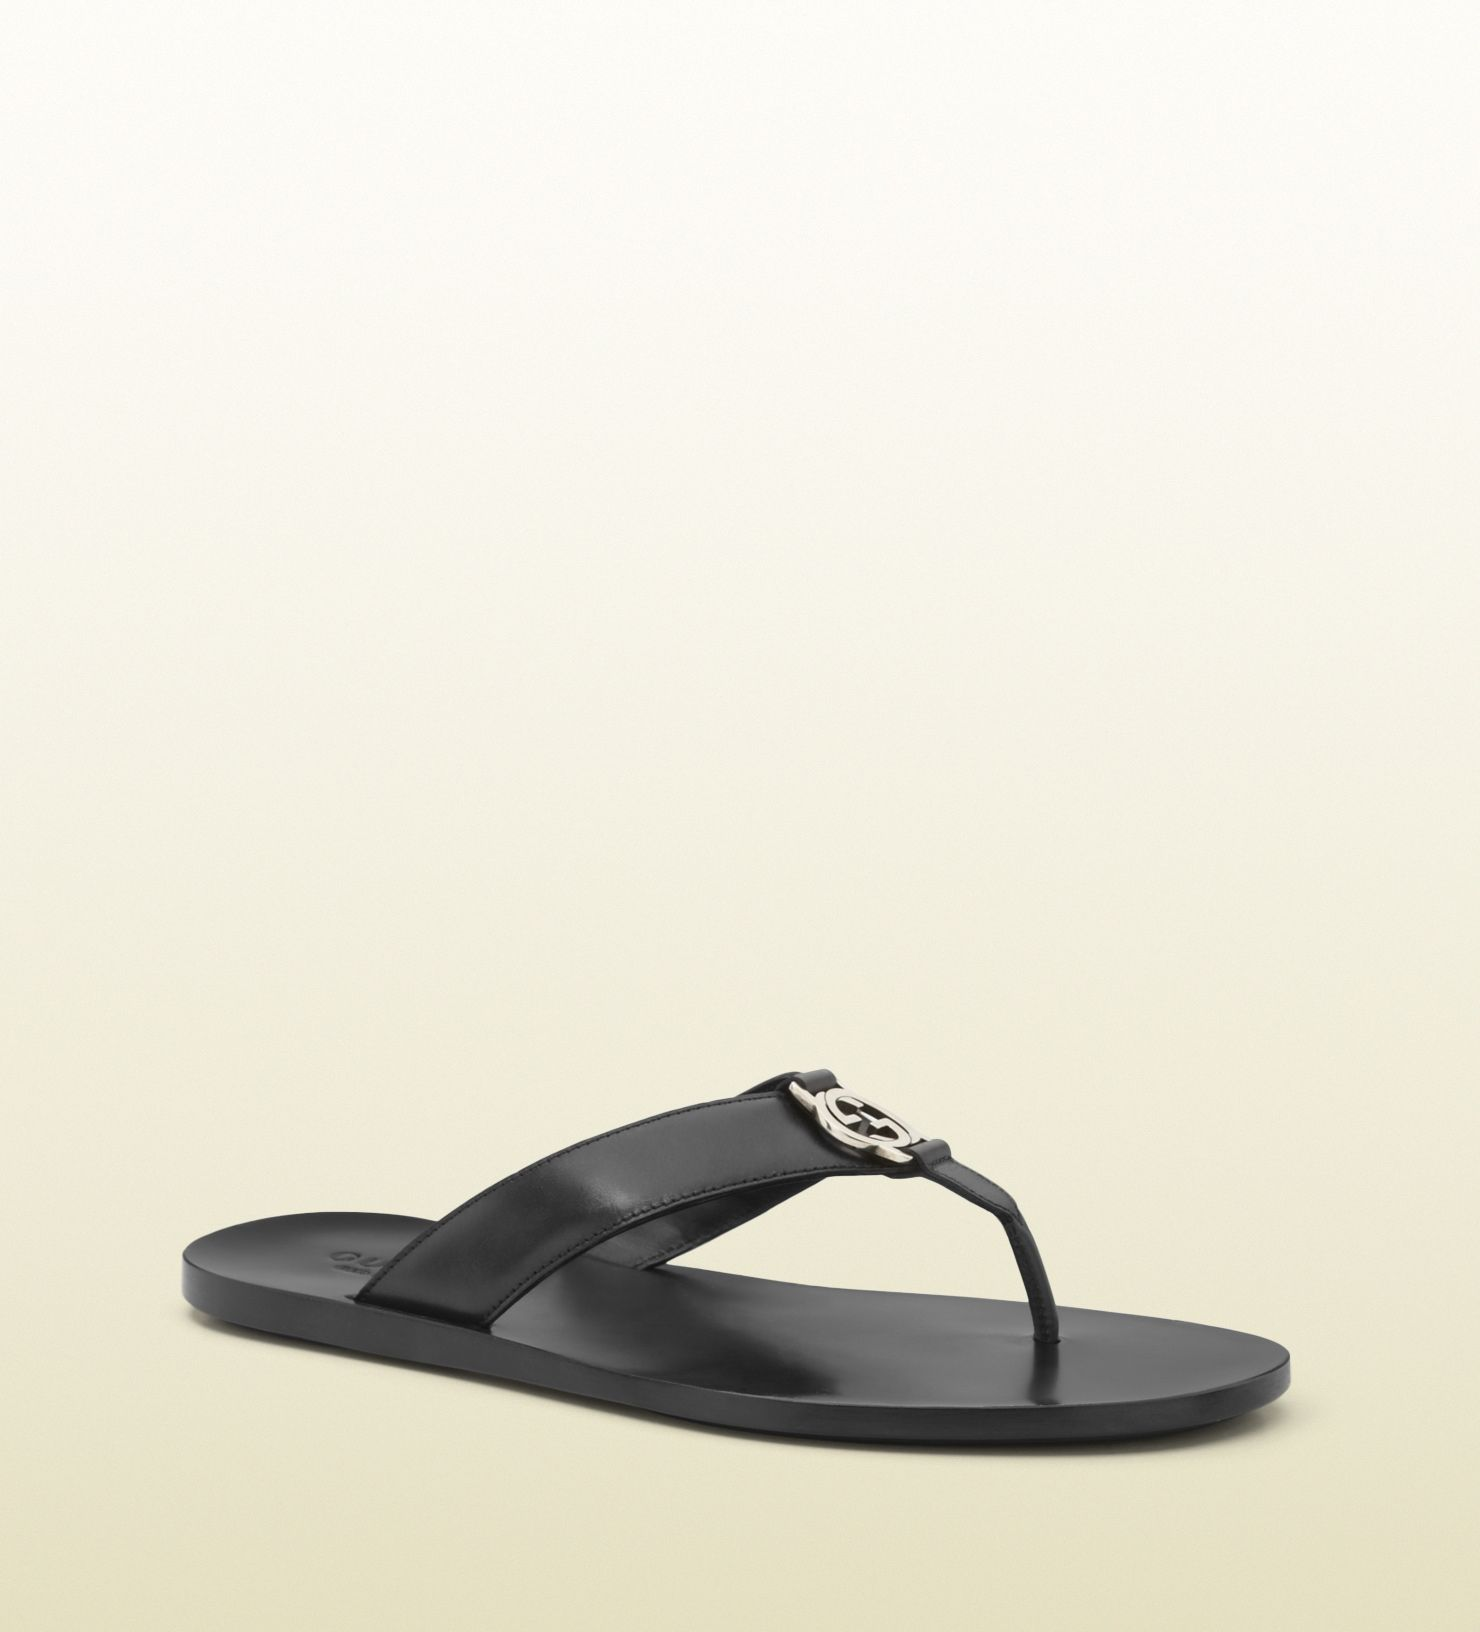 a6e3de5ee0b3 Gucci - 322740 A4HD0 1000 - black leather thong sandal - black leather Made  in Italy interlocking G detail leather sole